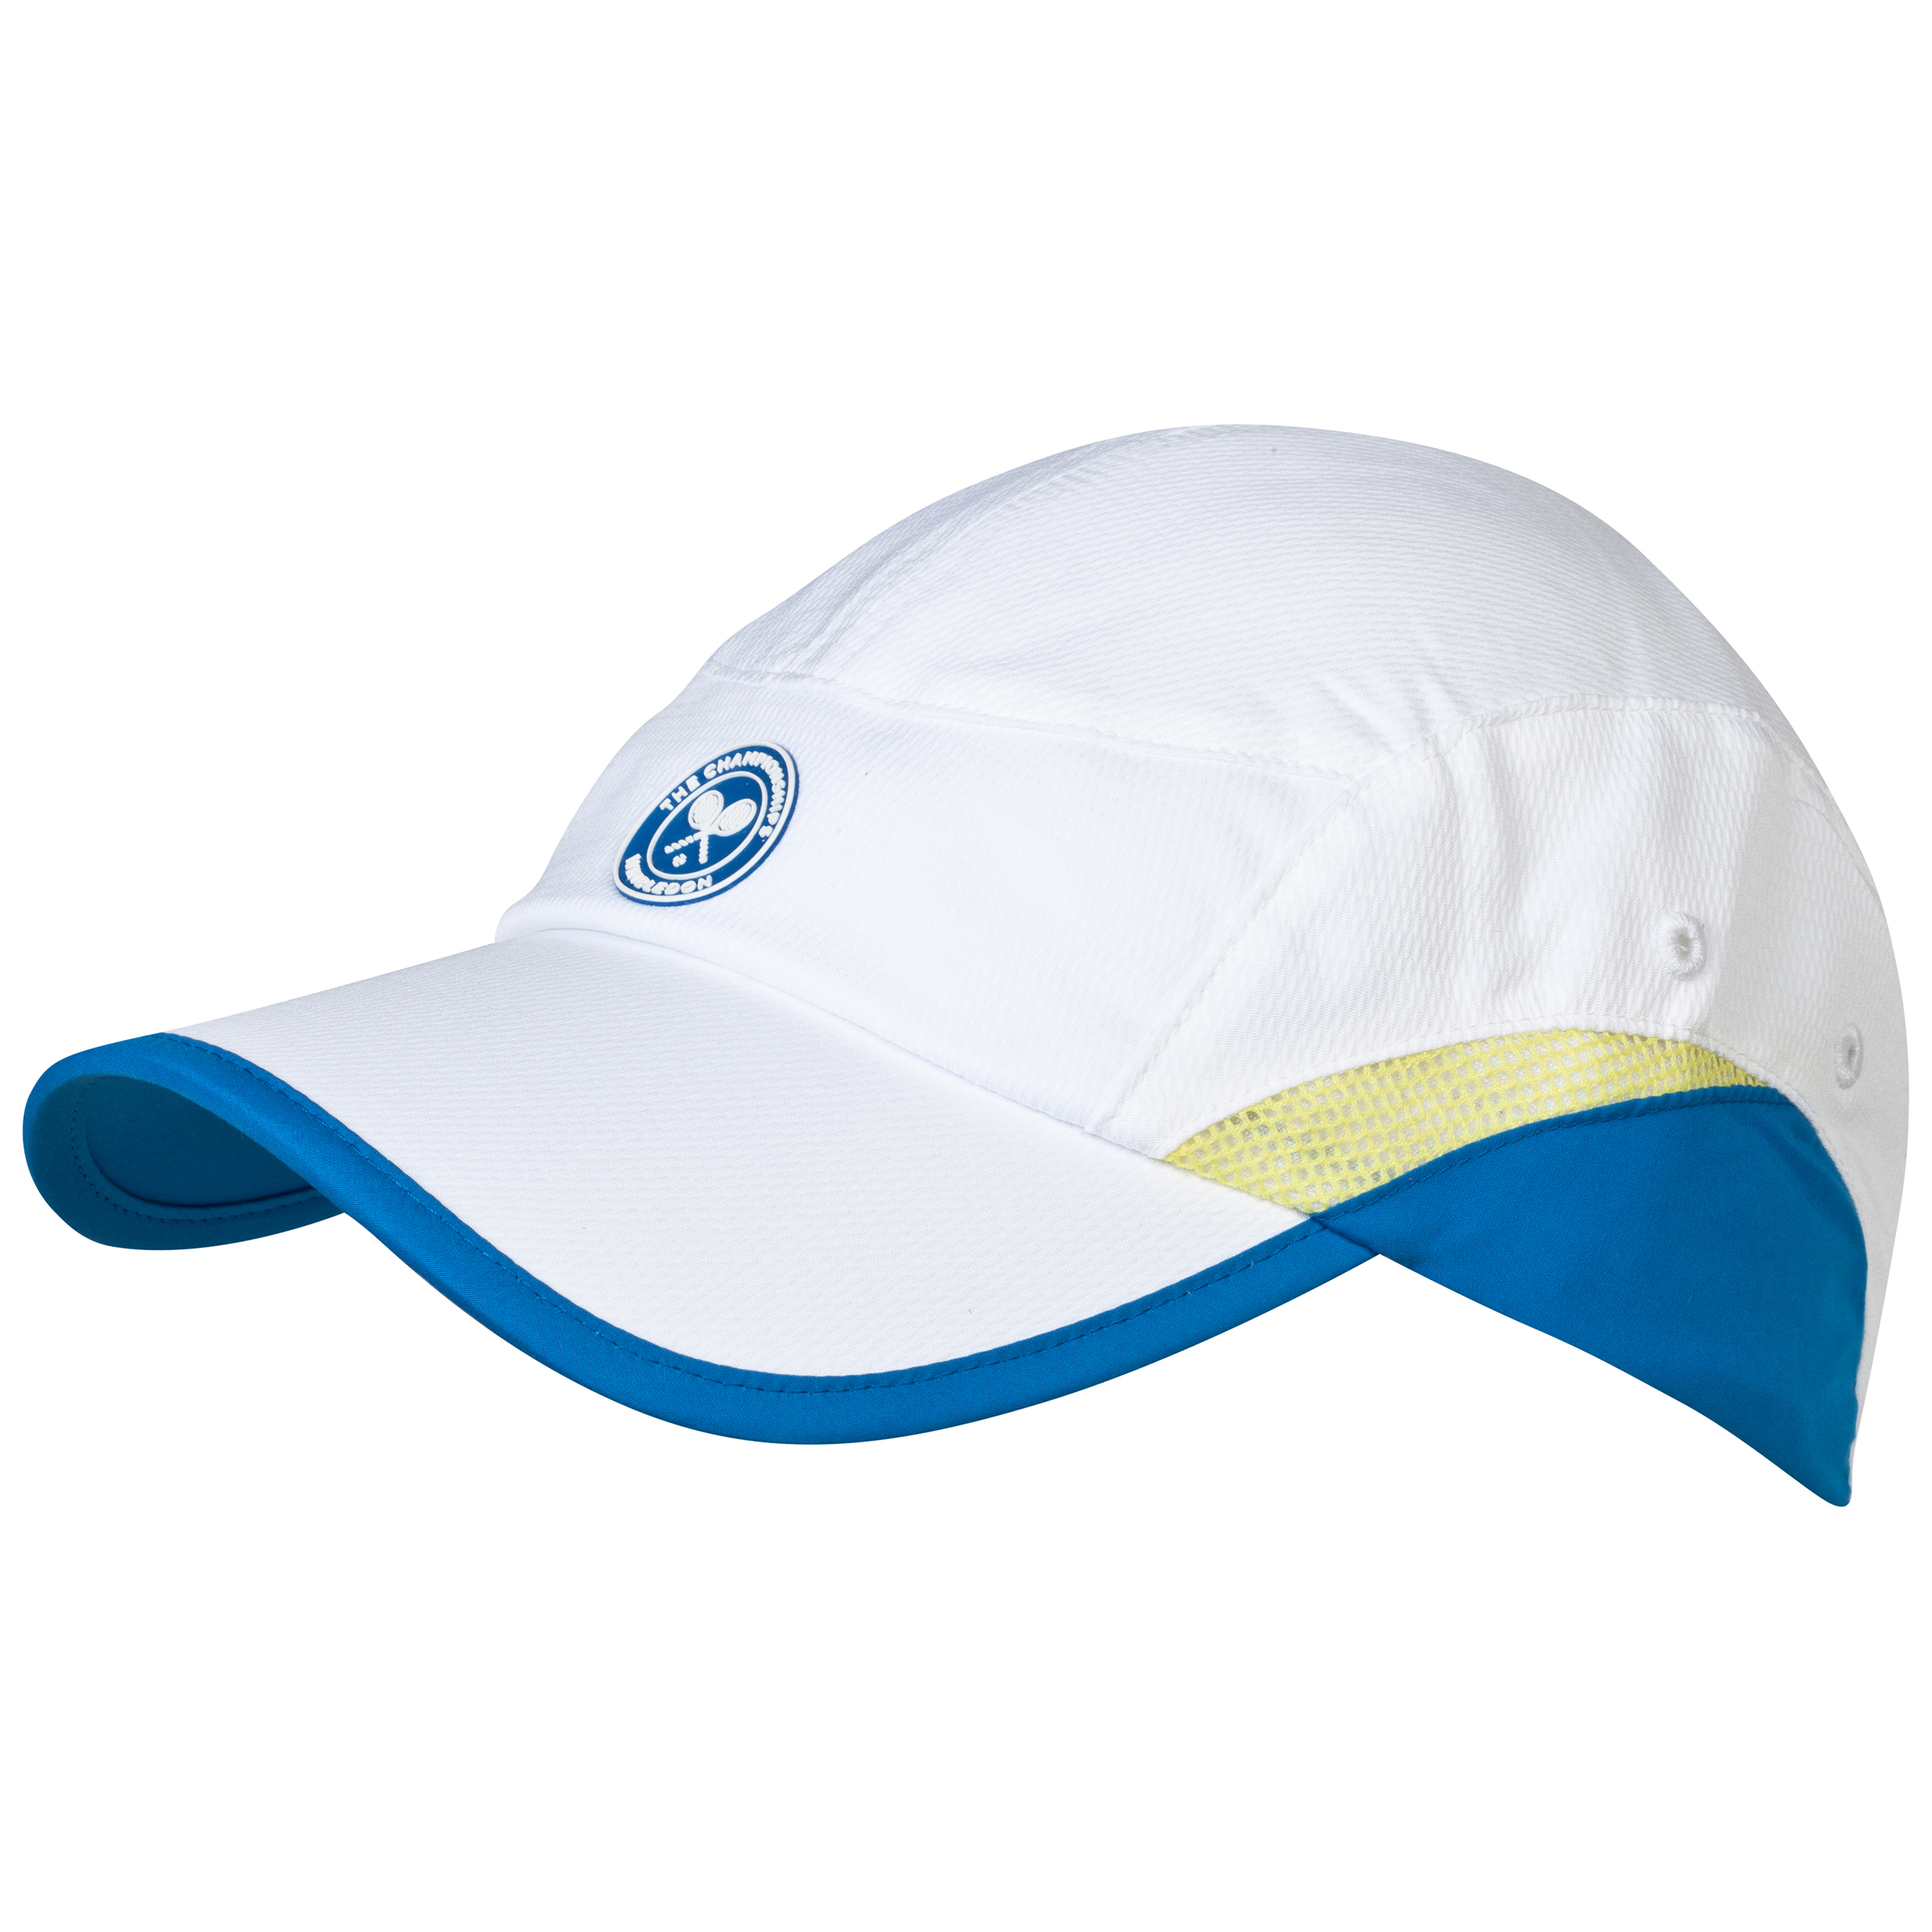 Wimbledon Player Cap - Kids White